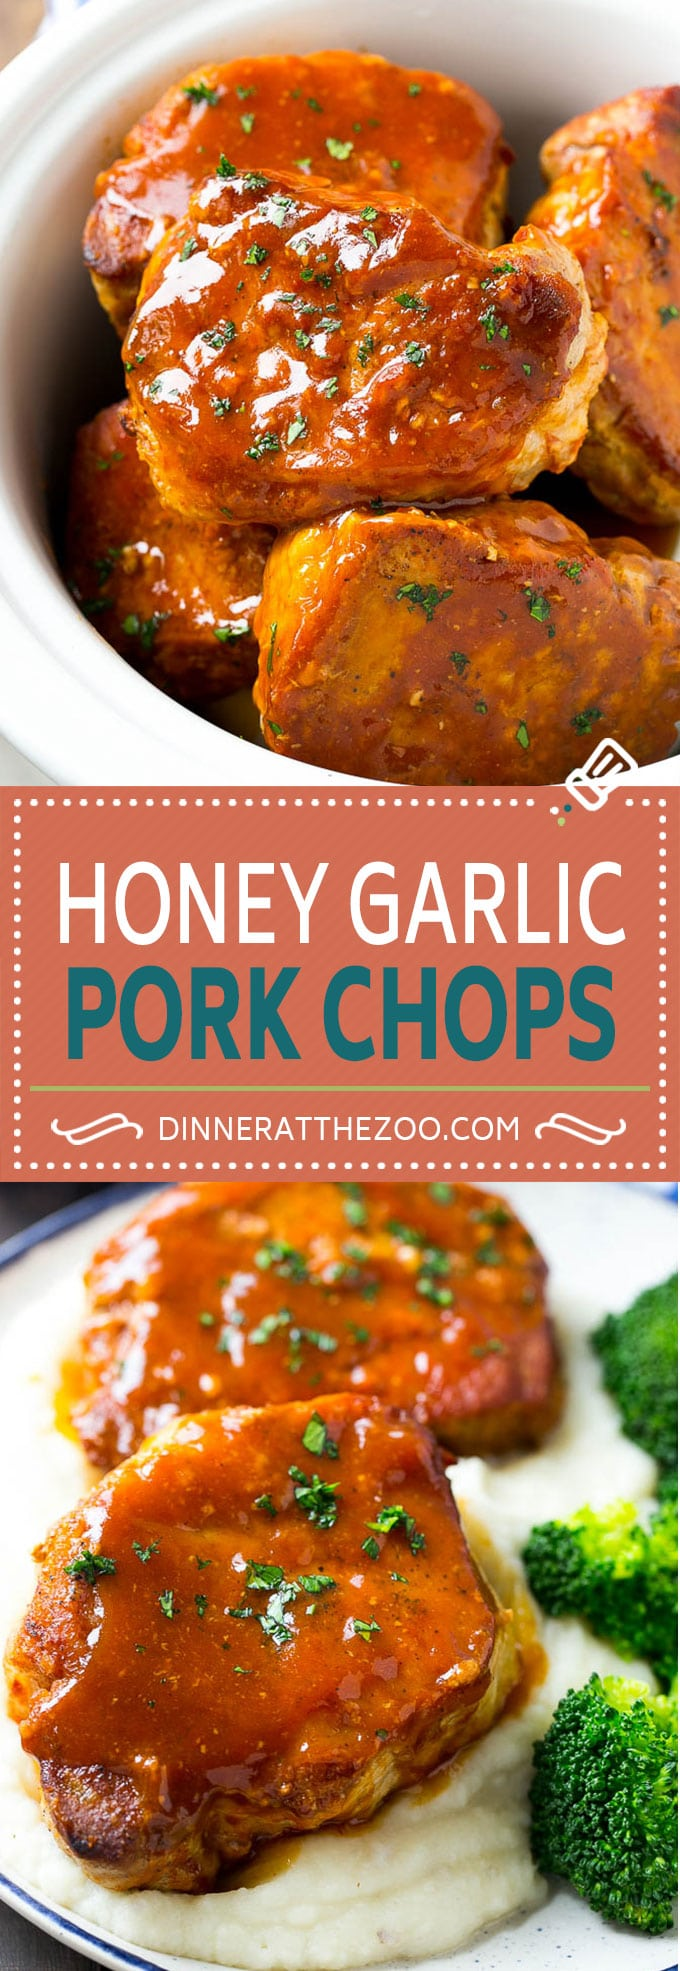 Honey Garlic Pork Chops Recipe | Slow Cooker Pork Chops | Crock Pot Pork Chops | Boneless Pork Chops Recipe #porkchops #pork #slowcooker #crockpot #dinner #dinneratthezoo